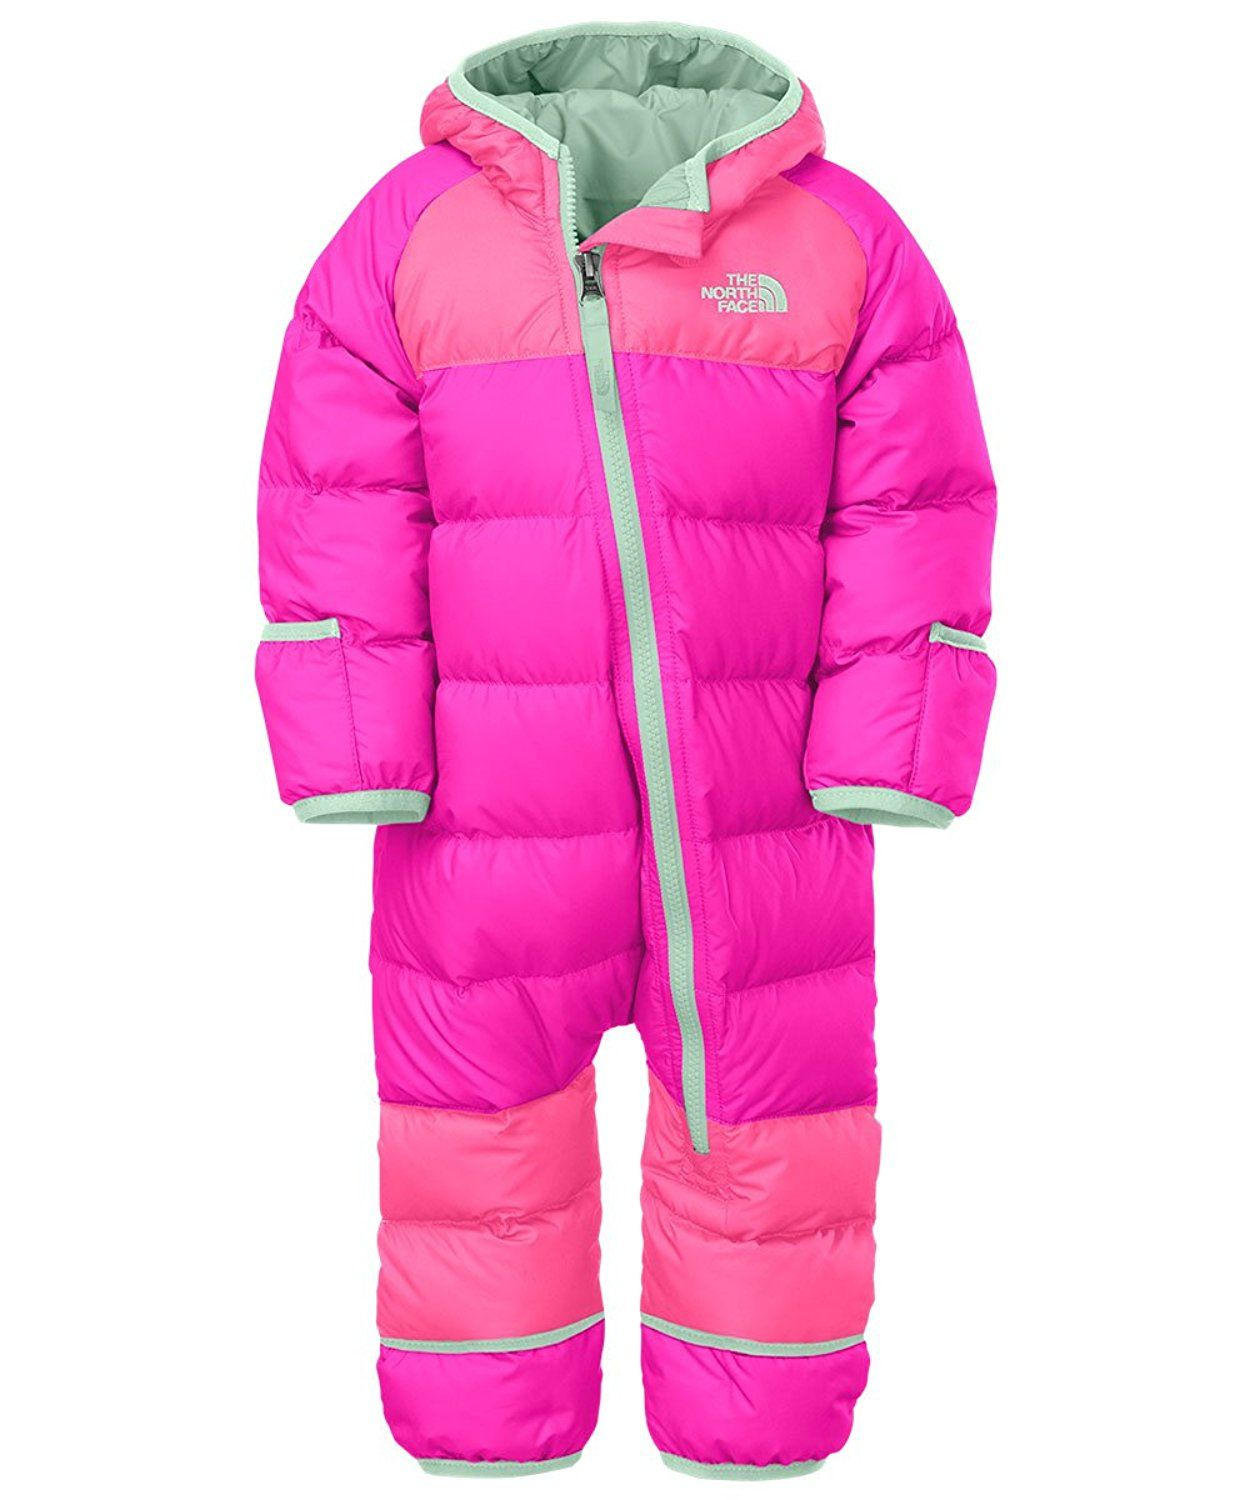 14e0a08ba low price north face lil snuggler down suit 48846 a69e8